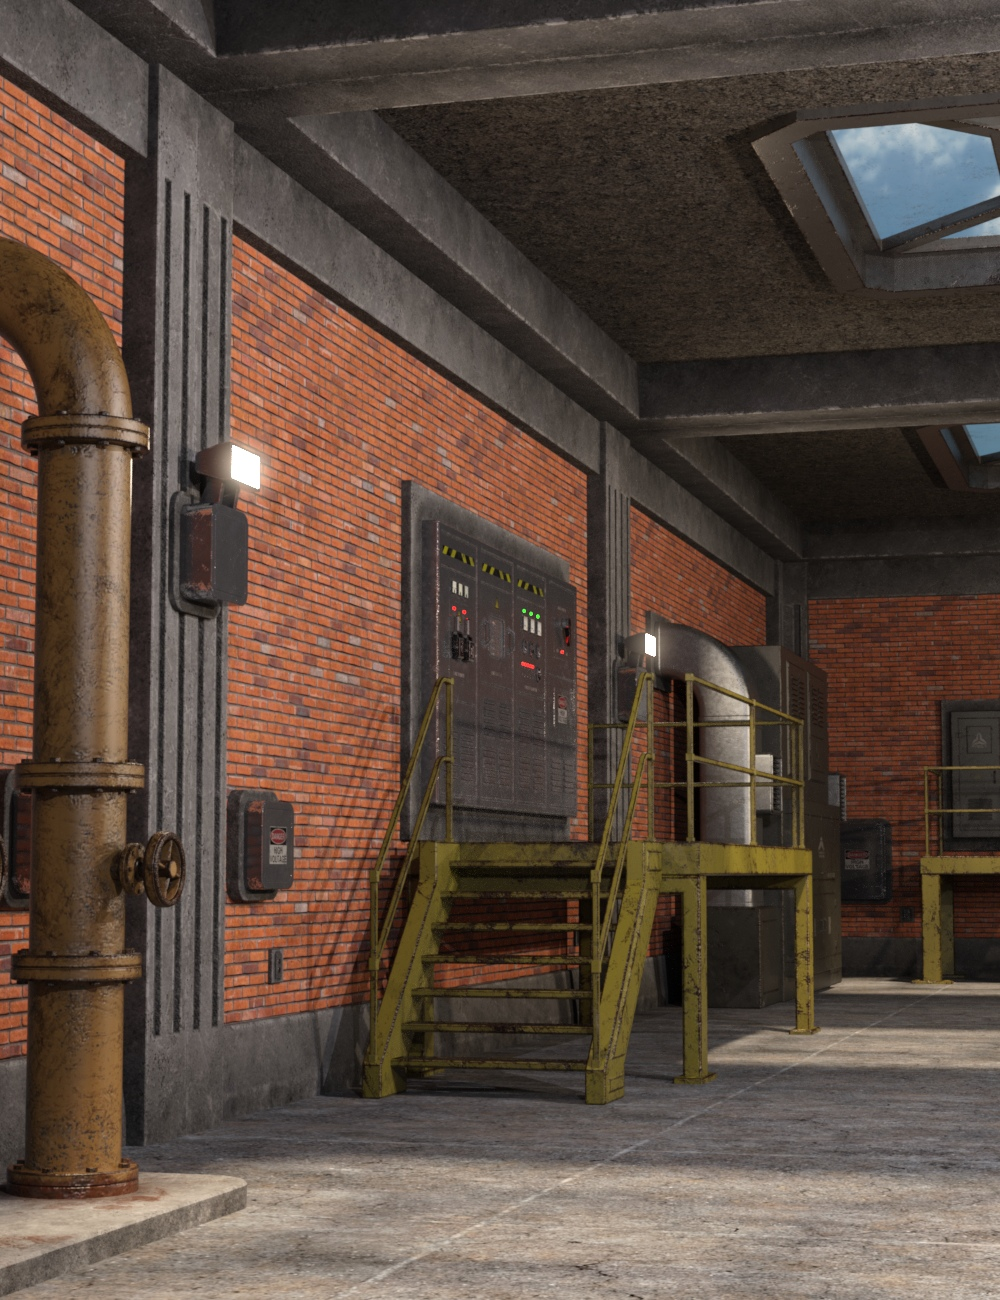 Industrial Interior Modular Kit 1 by: Nightshift3D, 3D Models by Daz 3D